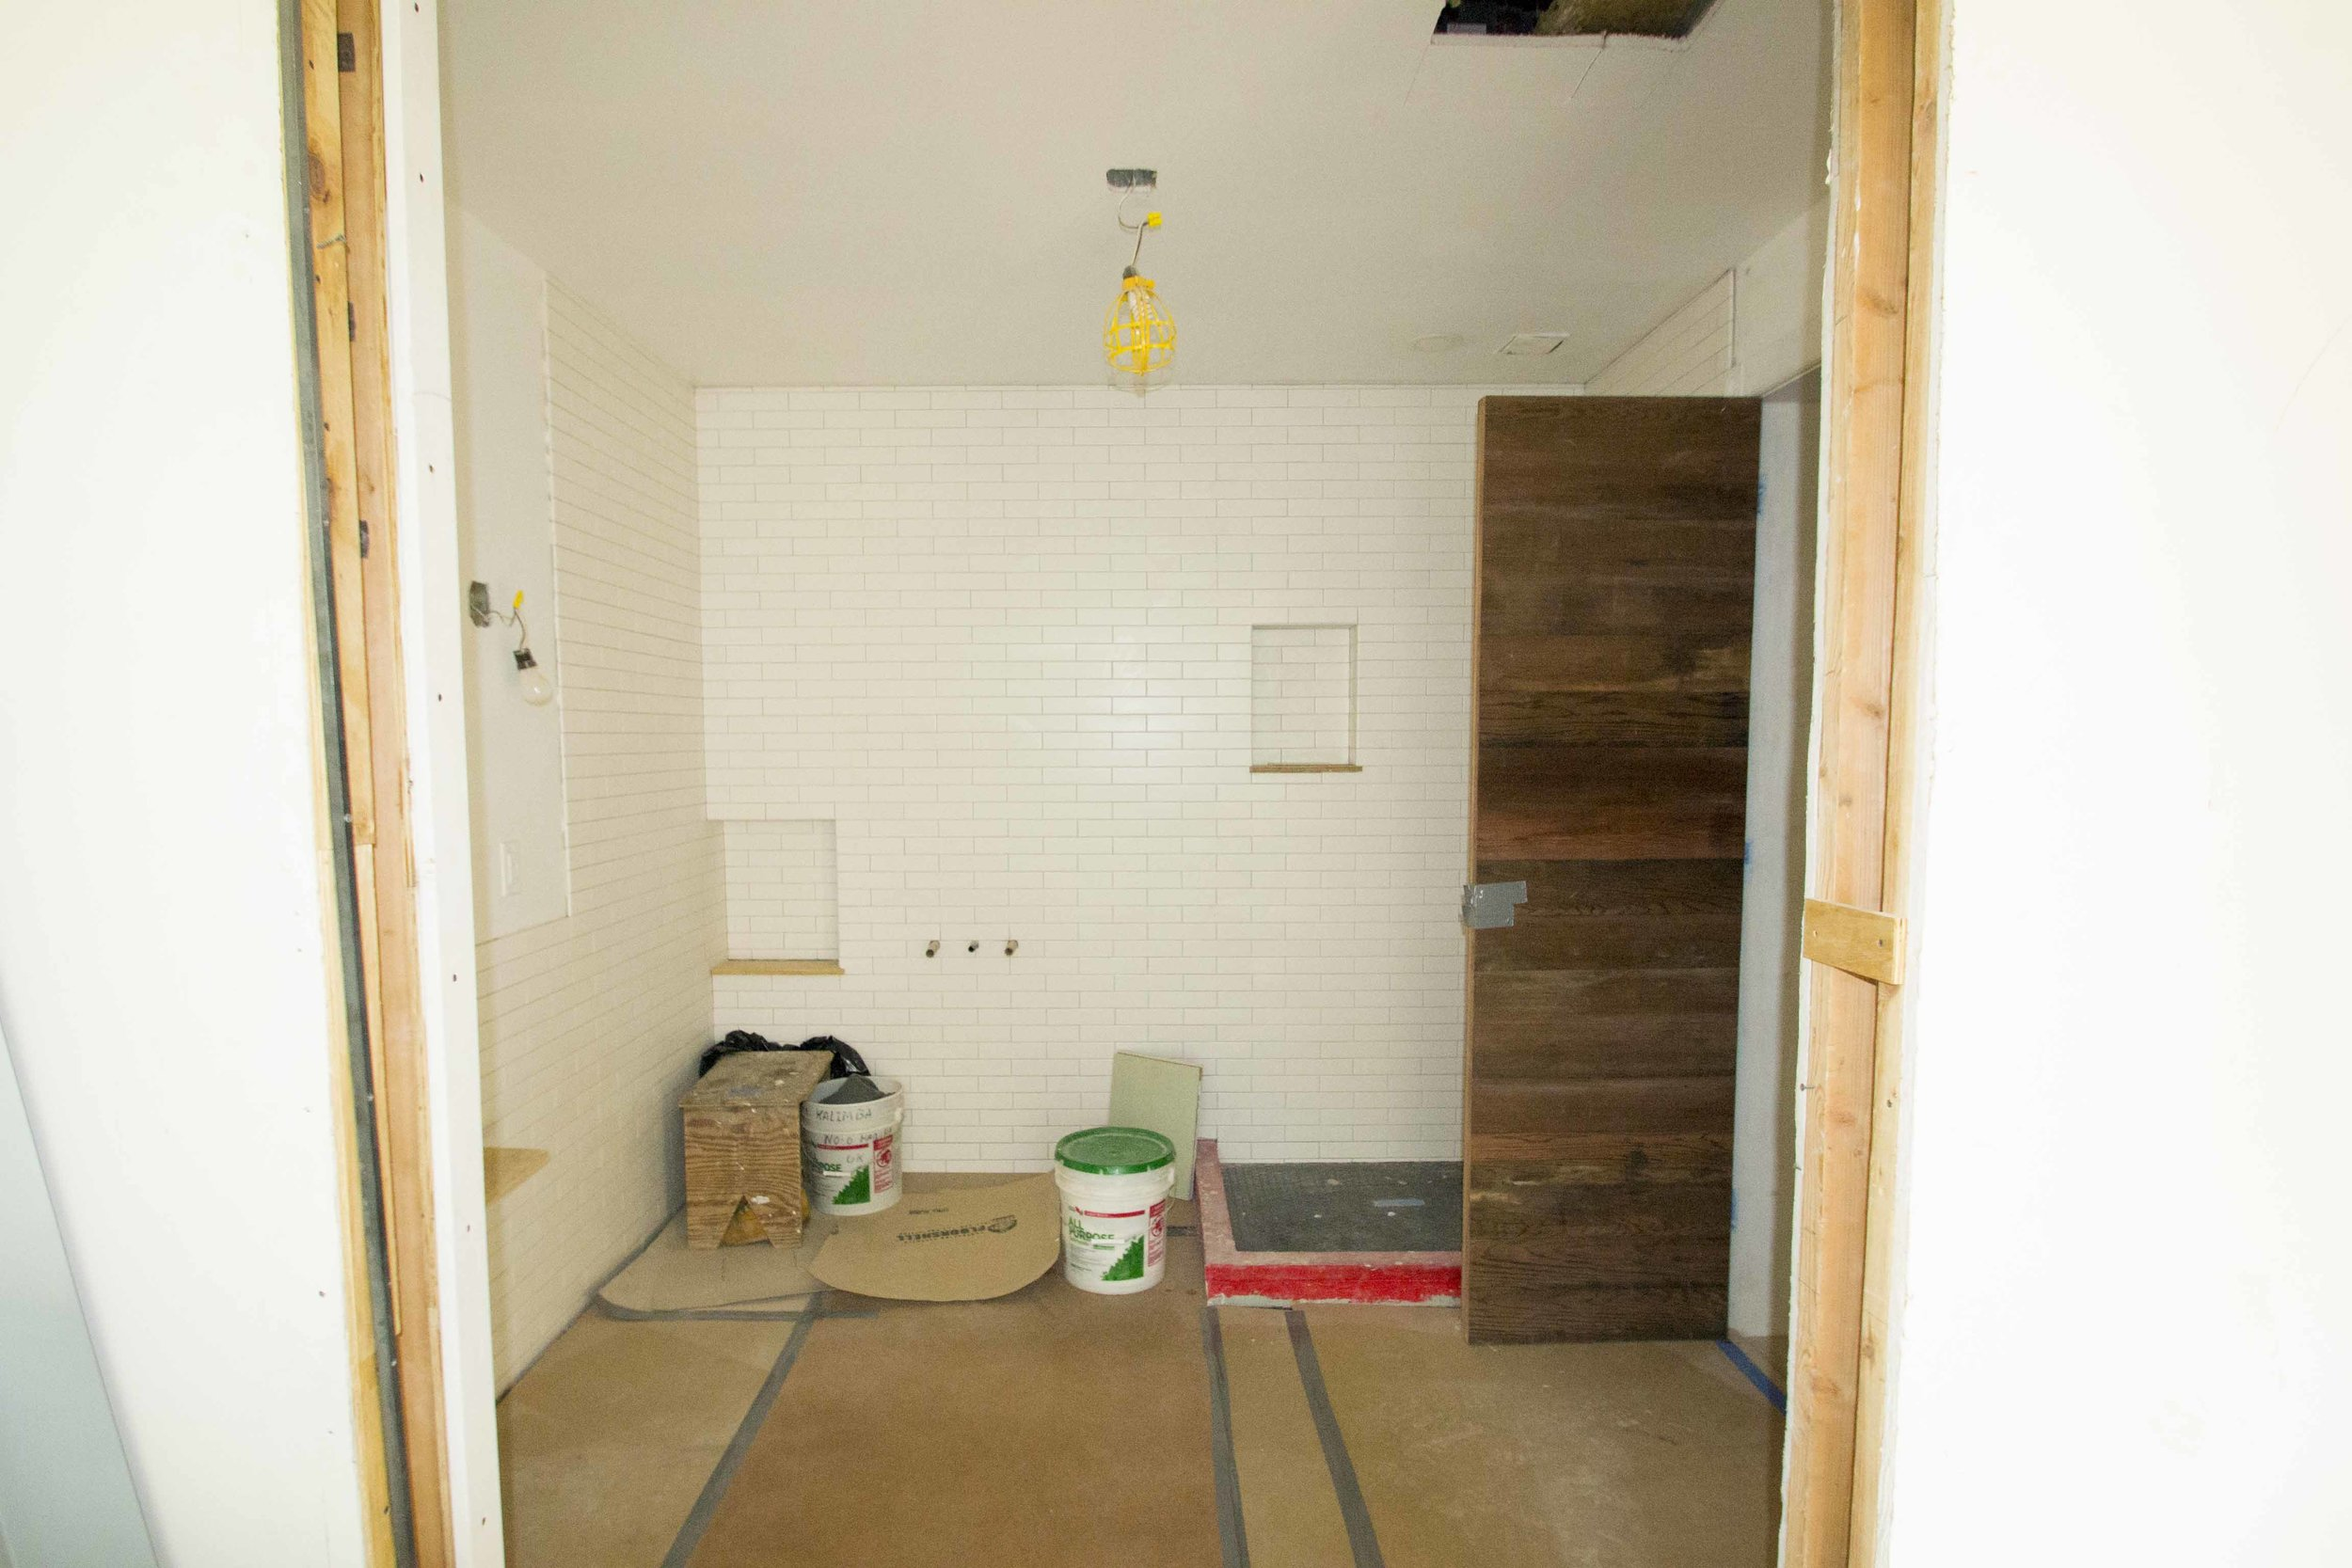 20161111__NY PASSIVE HOUSE DAYS_OPEN HOUSE_PAUL CASTRUCCI ARCHITECT__0023_lowres.jpg